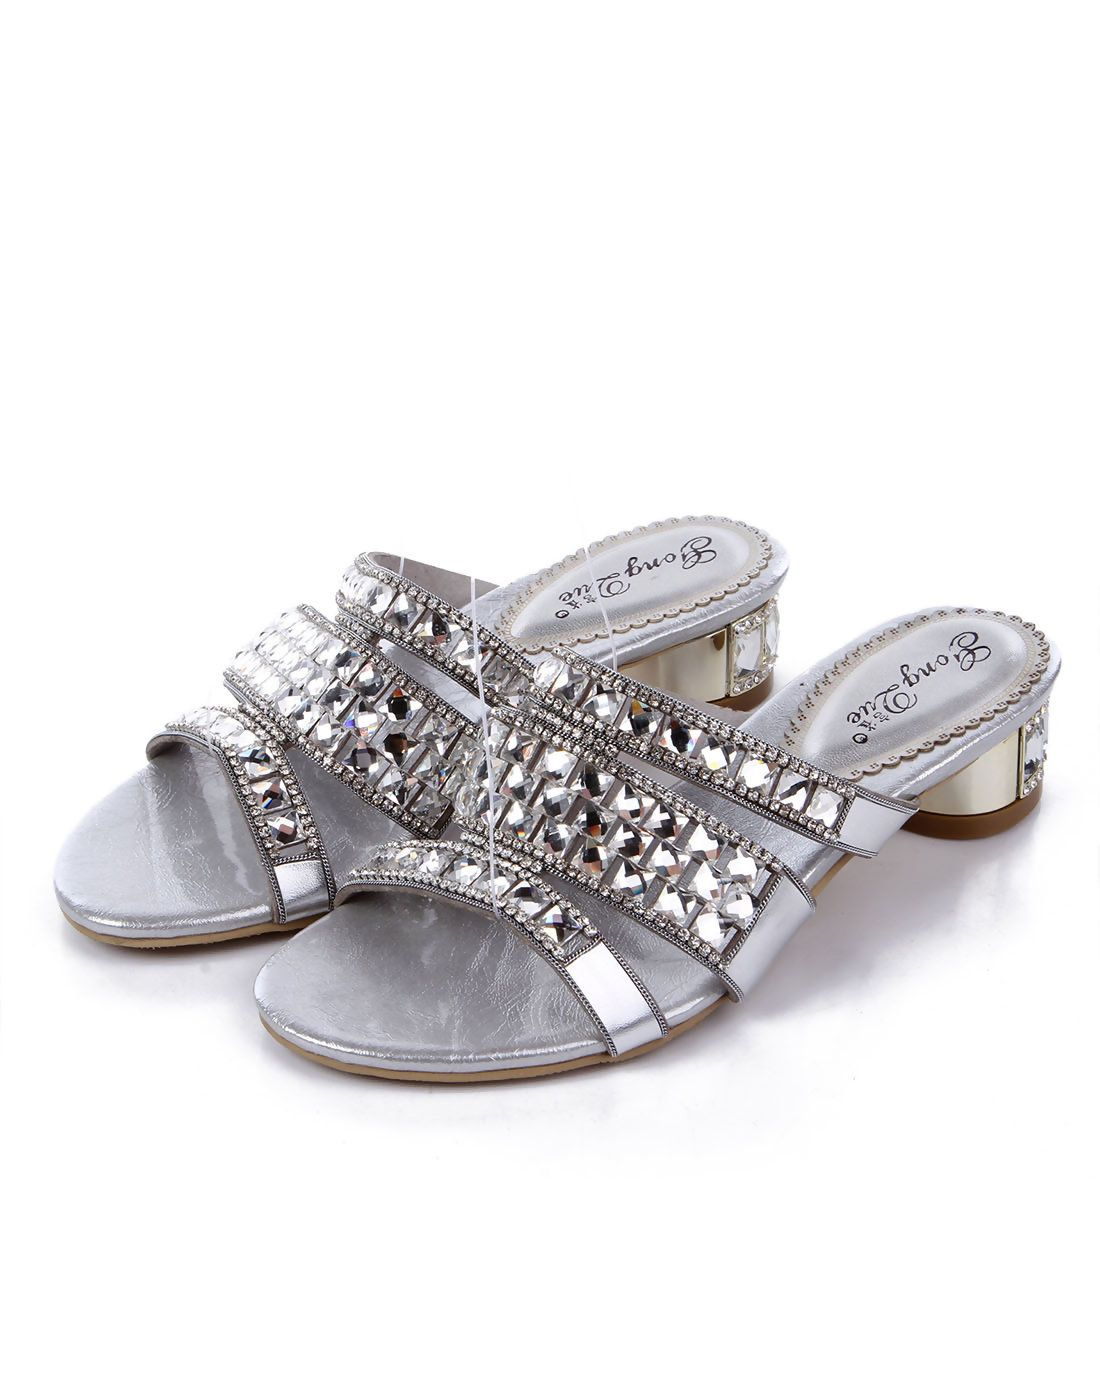 #AdoreWe #VIPme Sandals - G·Sharrow Silver Open-Toe Crystal Embellished Rubber Chunky Sandals - AdoreWe.com